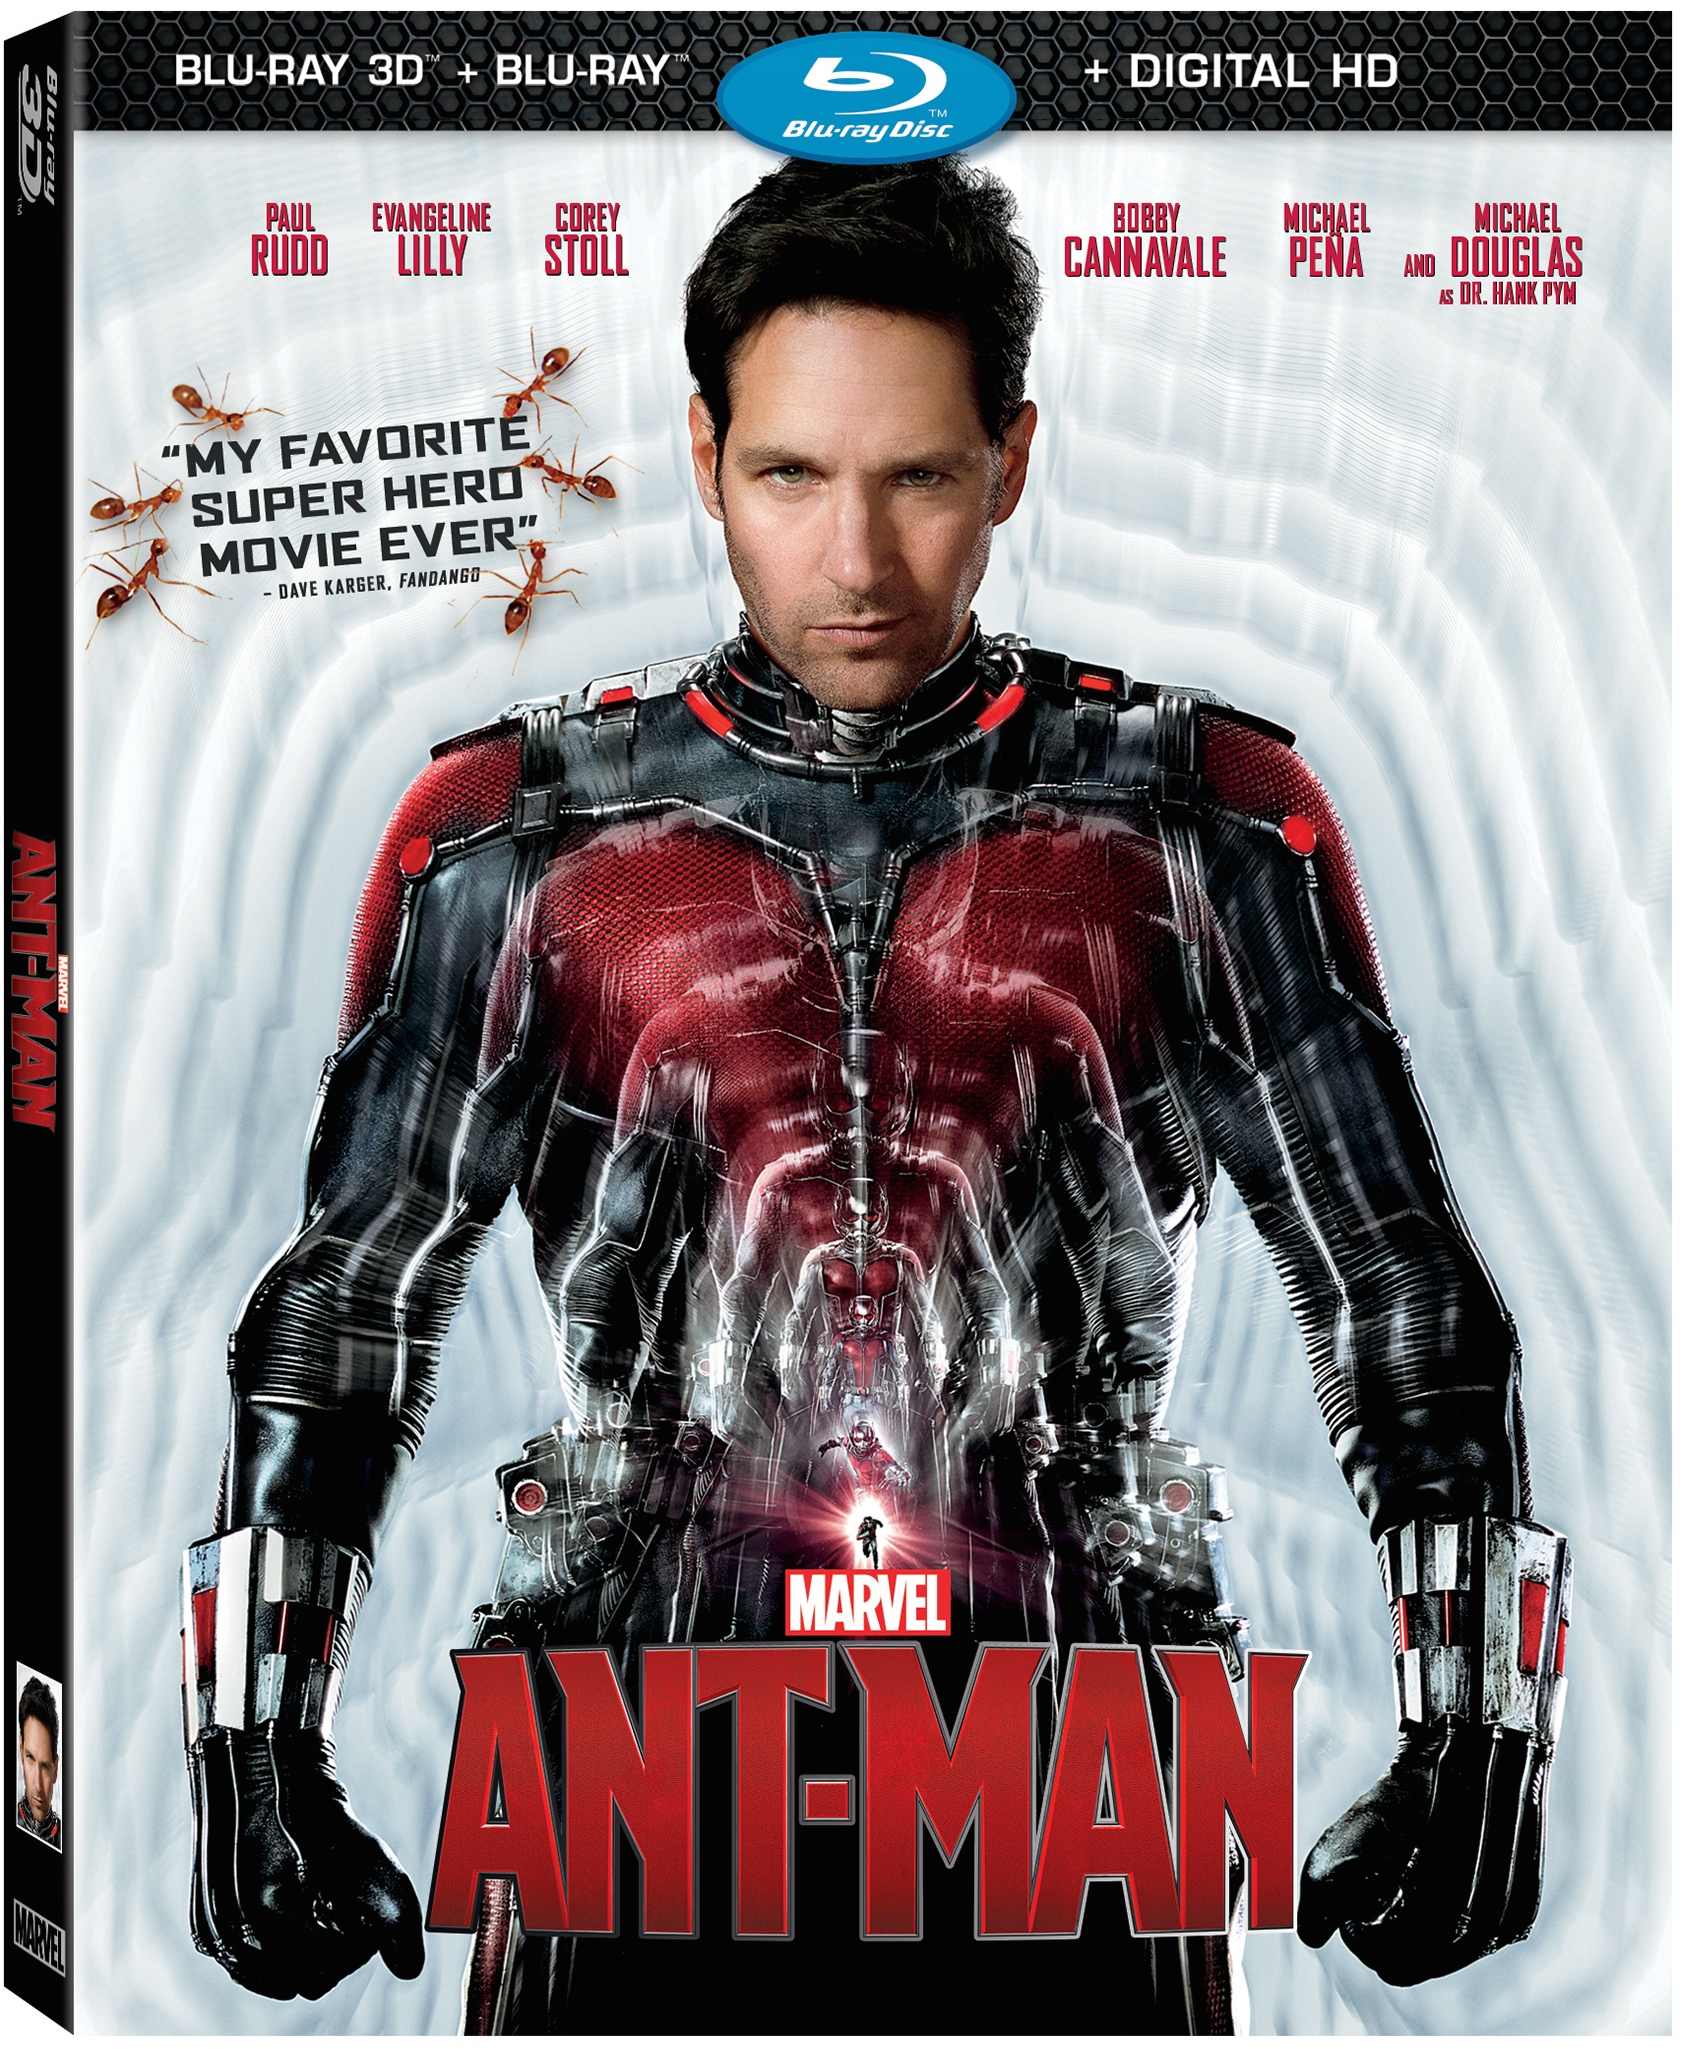 'Ant-Man' Blu-ray Trailer Promises More Excitement